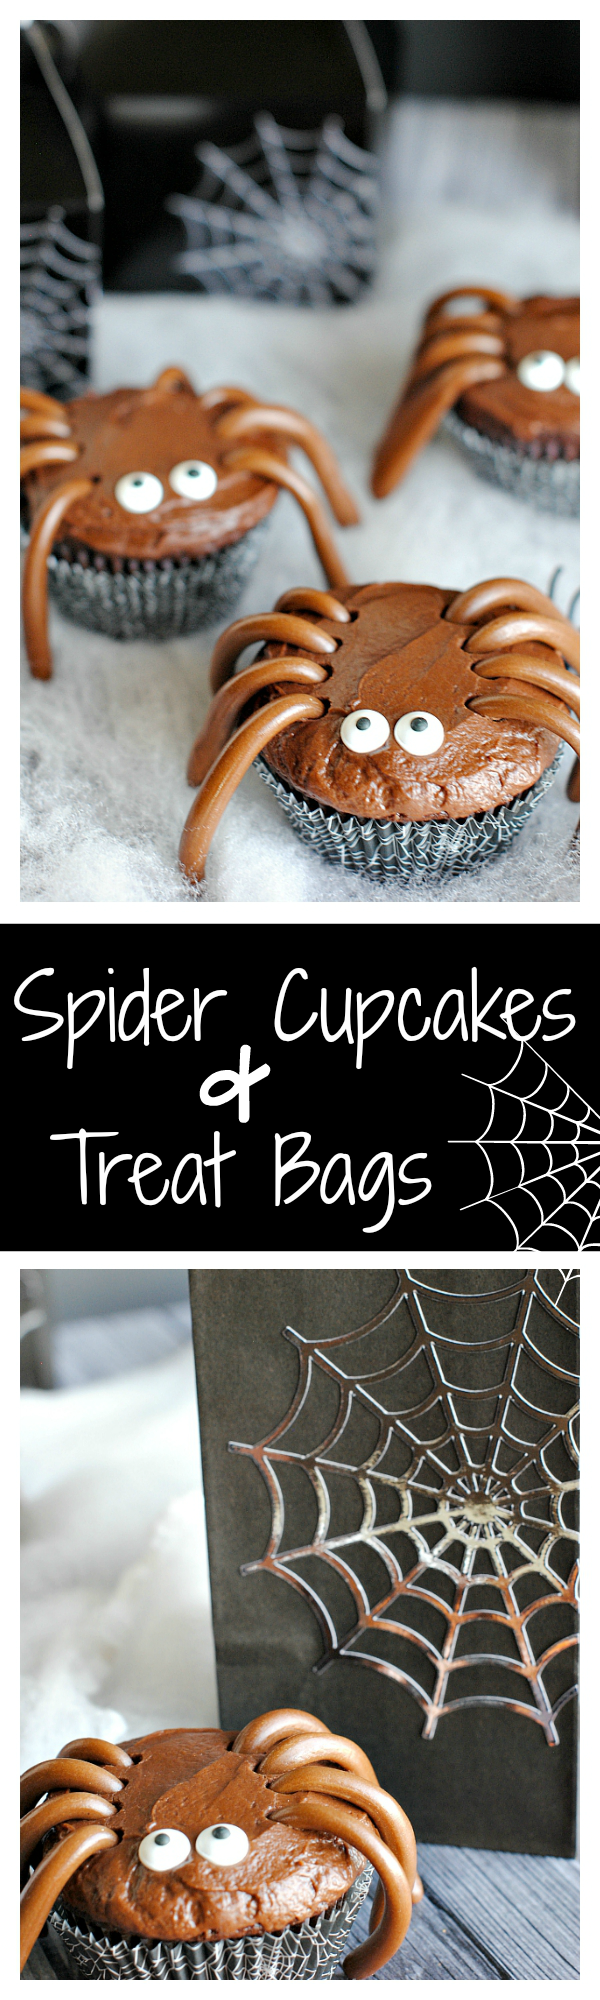 Cute & Easy Spider Cupcakes and Spider Web Treat Boxes